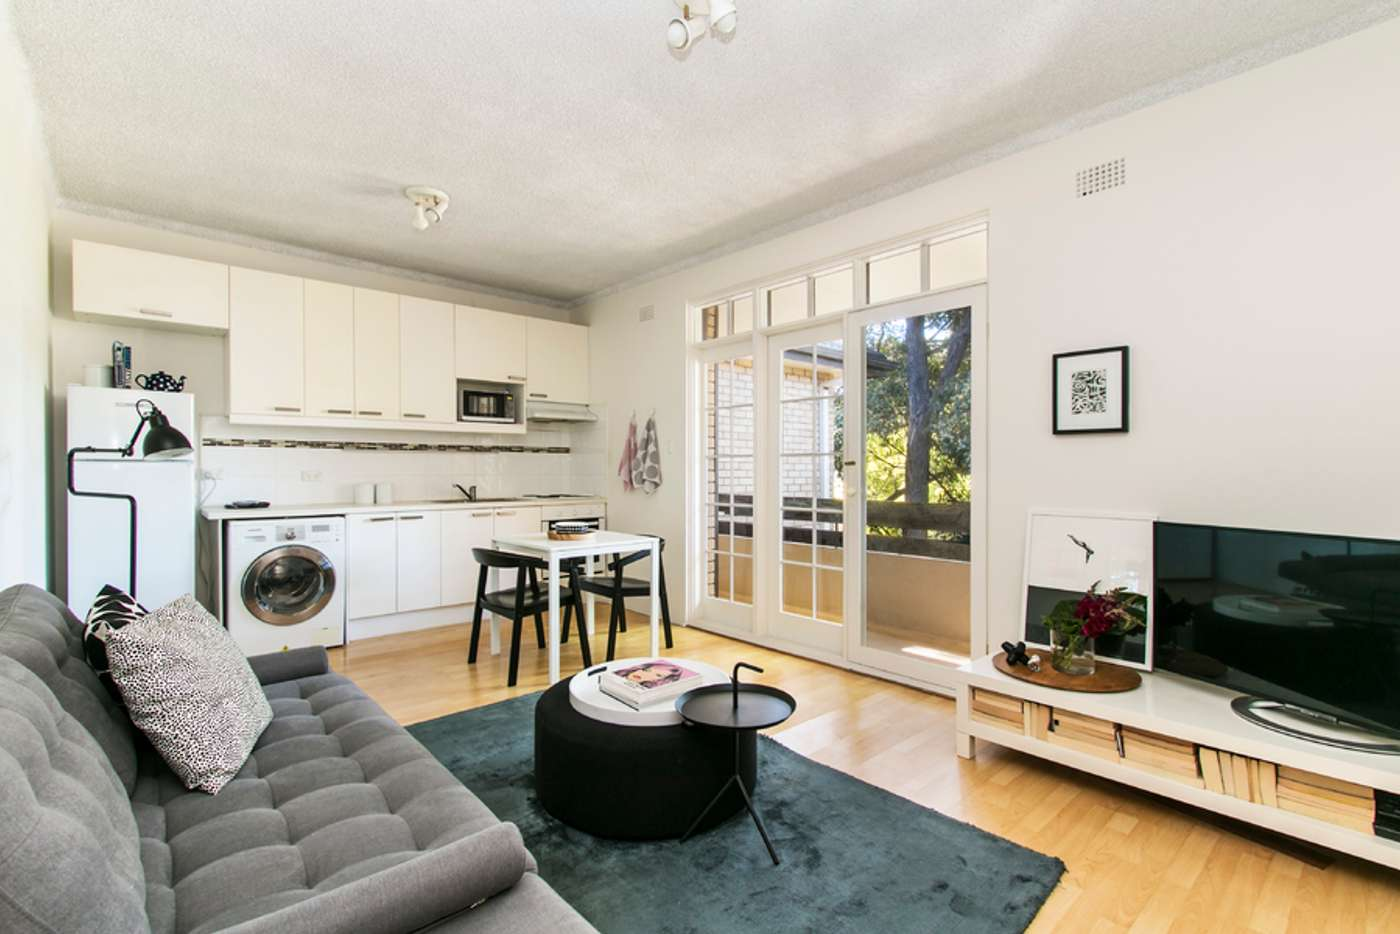 Main view of Homely apartment listing, 18/54 Johnston Street, Annandale NSW 2038